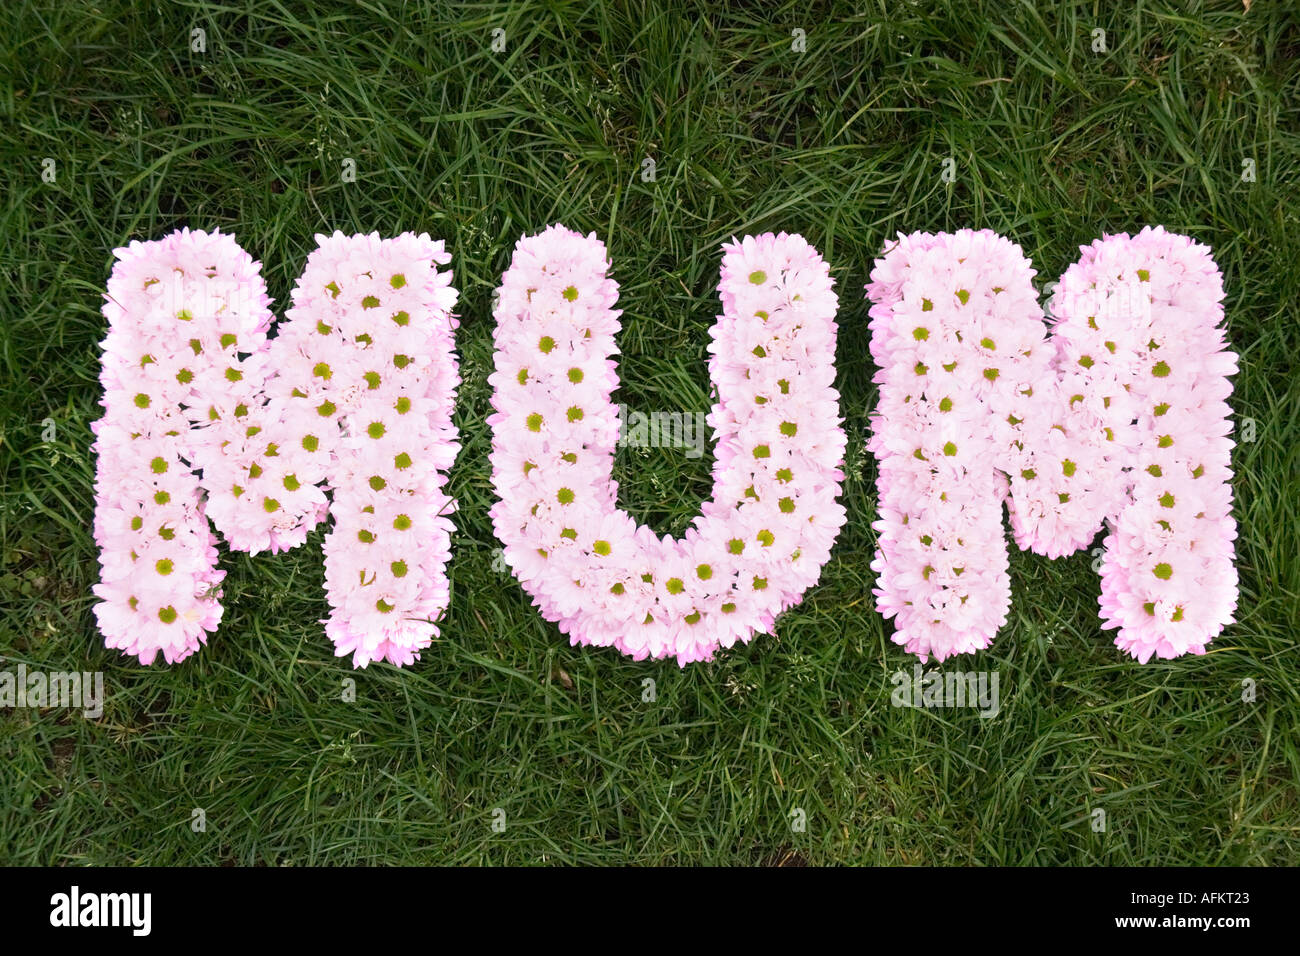 Pink Funeral Flowers Spelling The Word Mum Grass Background Stock